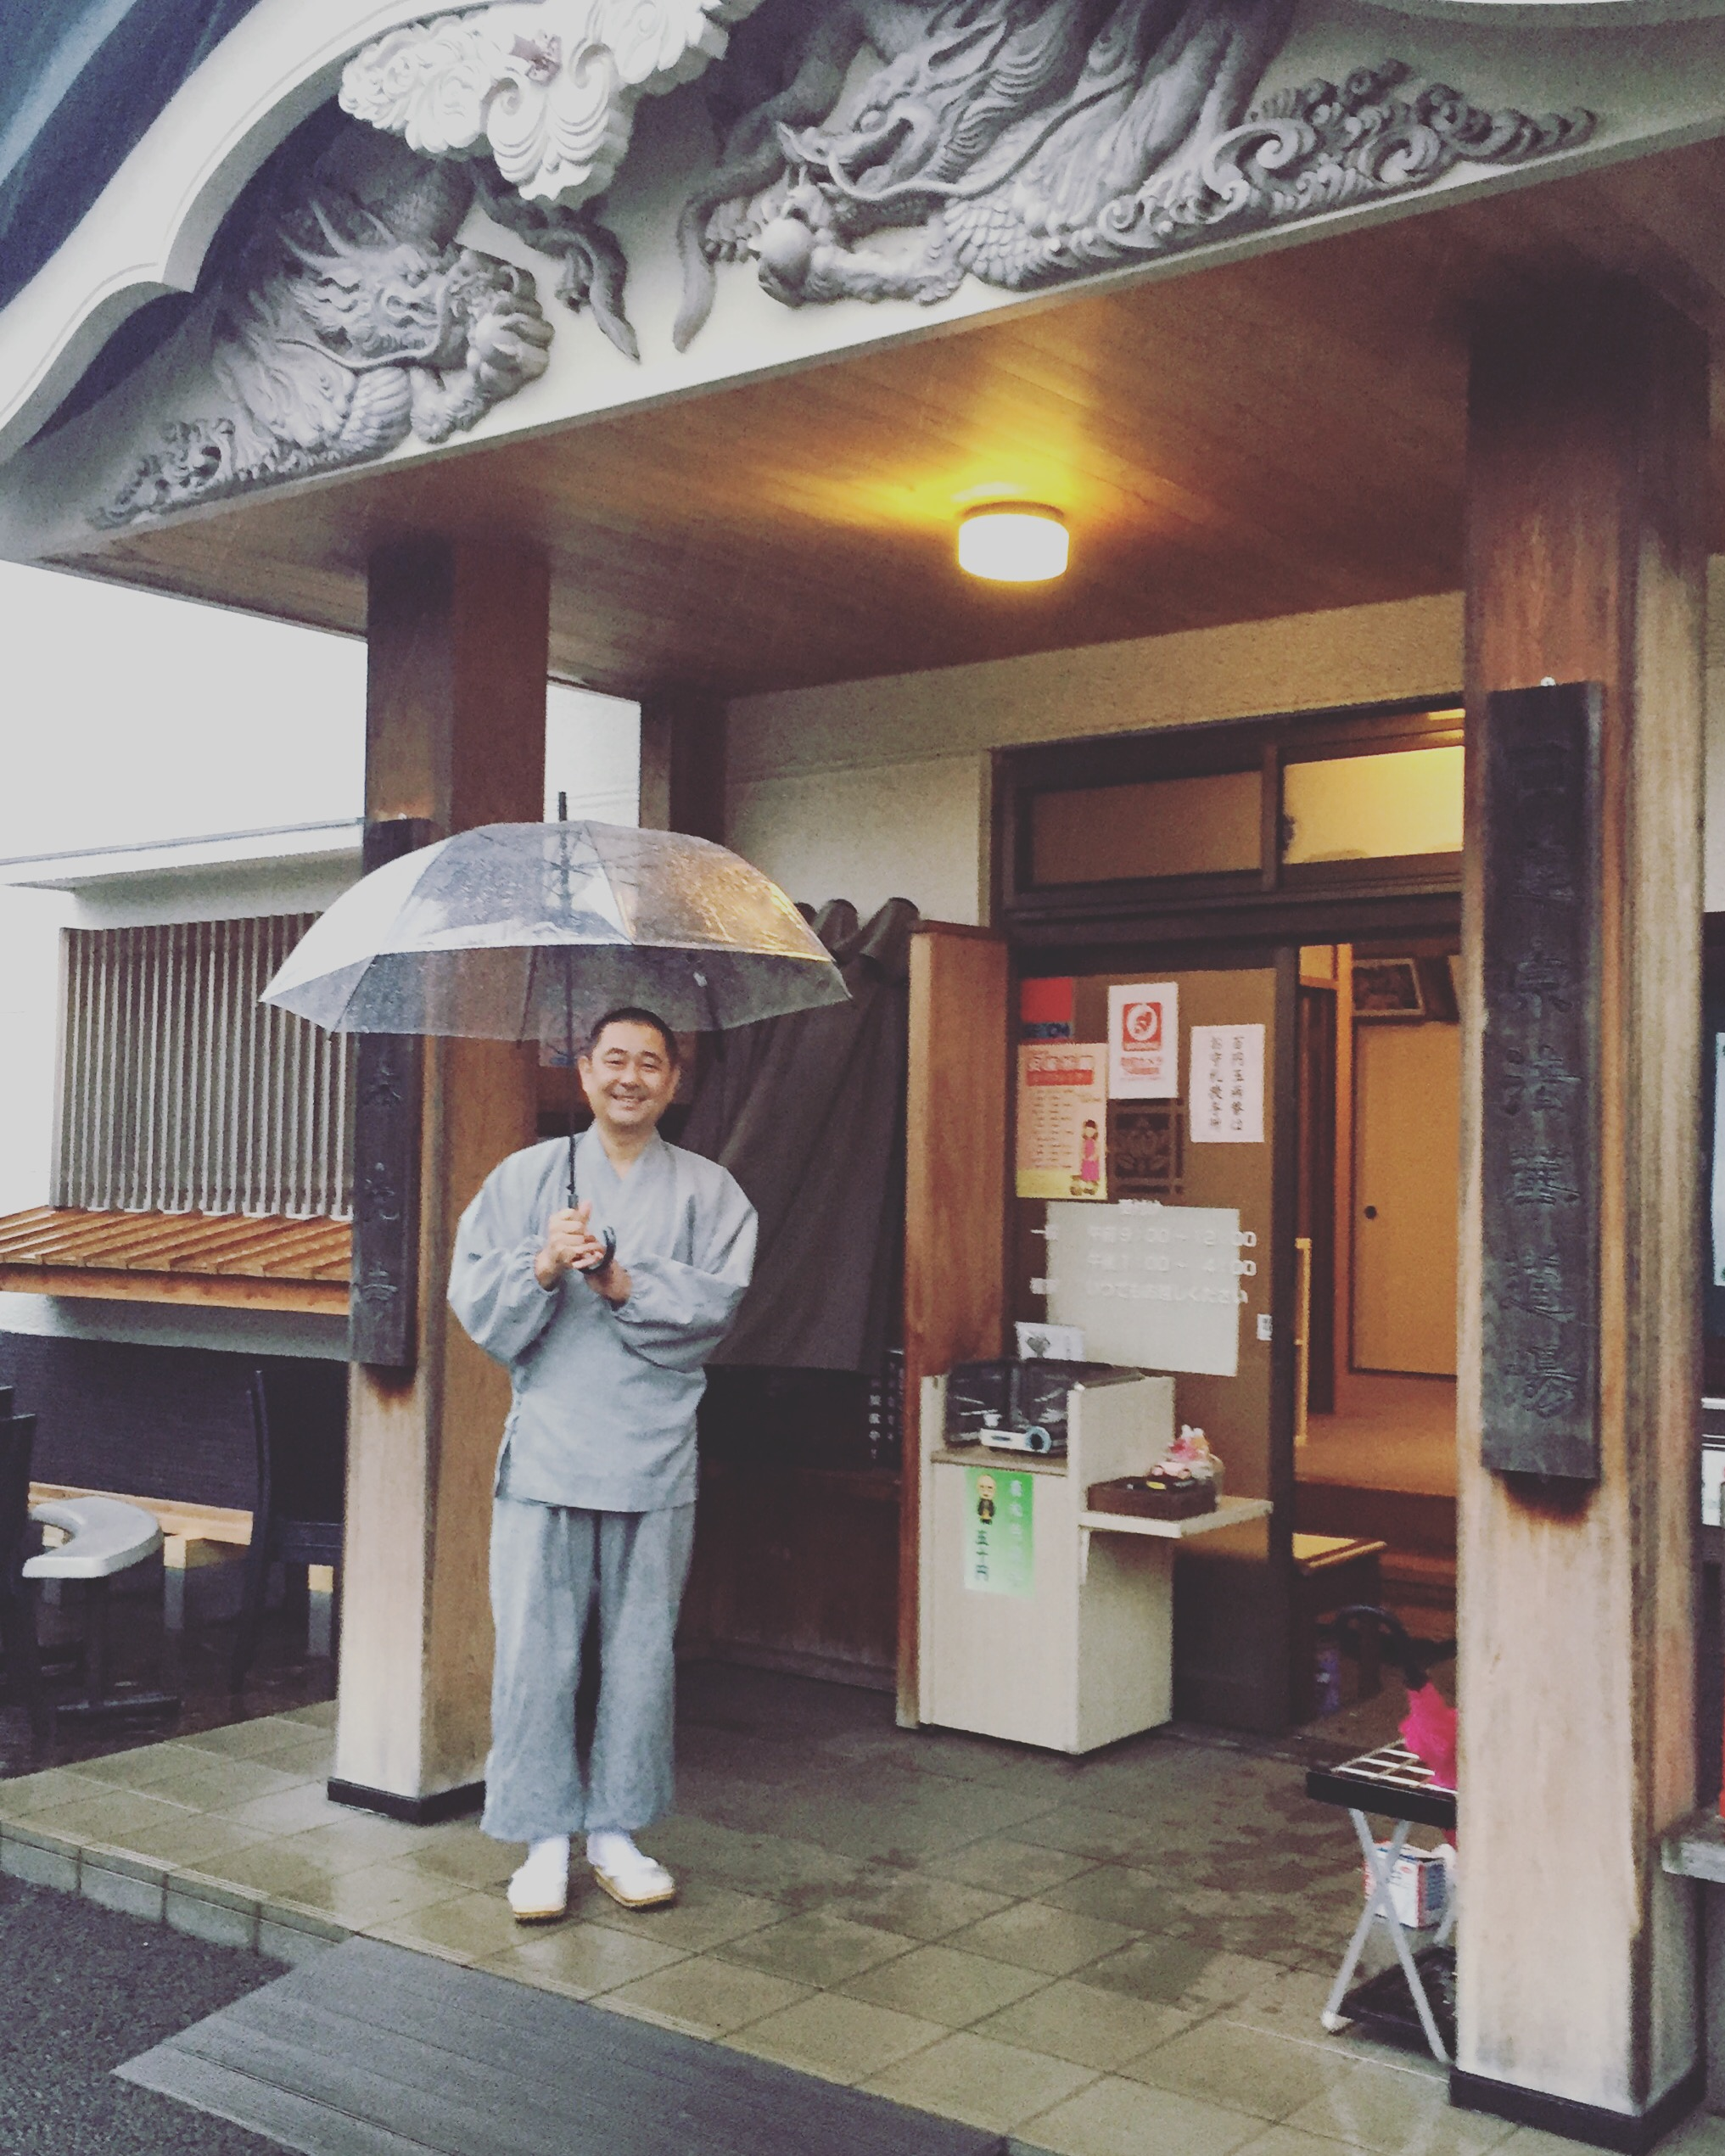 Bidou San in his working uniform. Smiling, even in the rain.